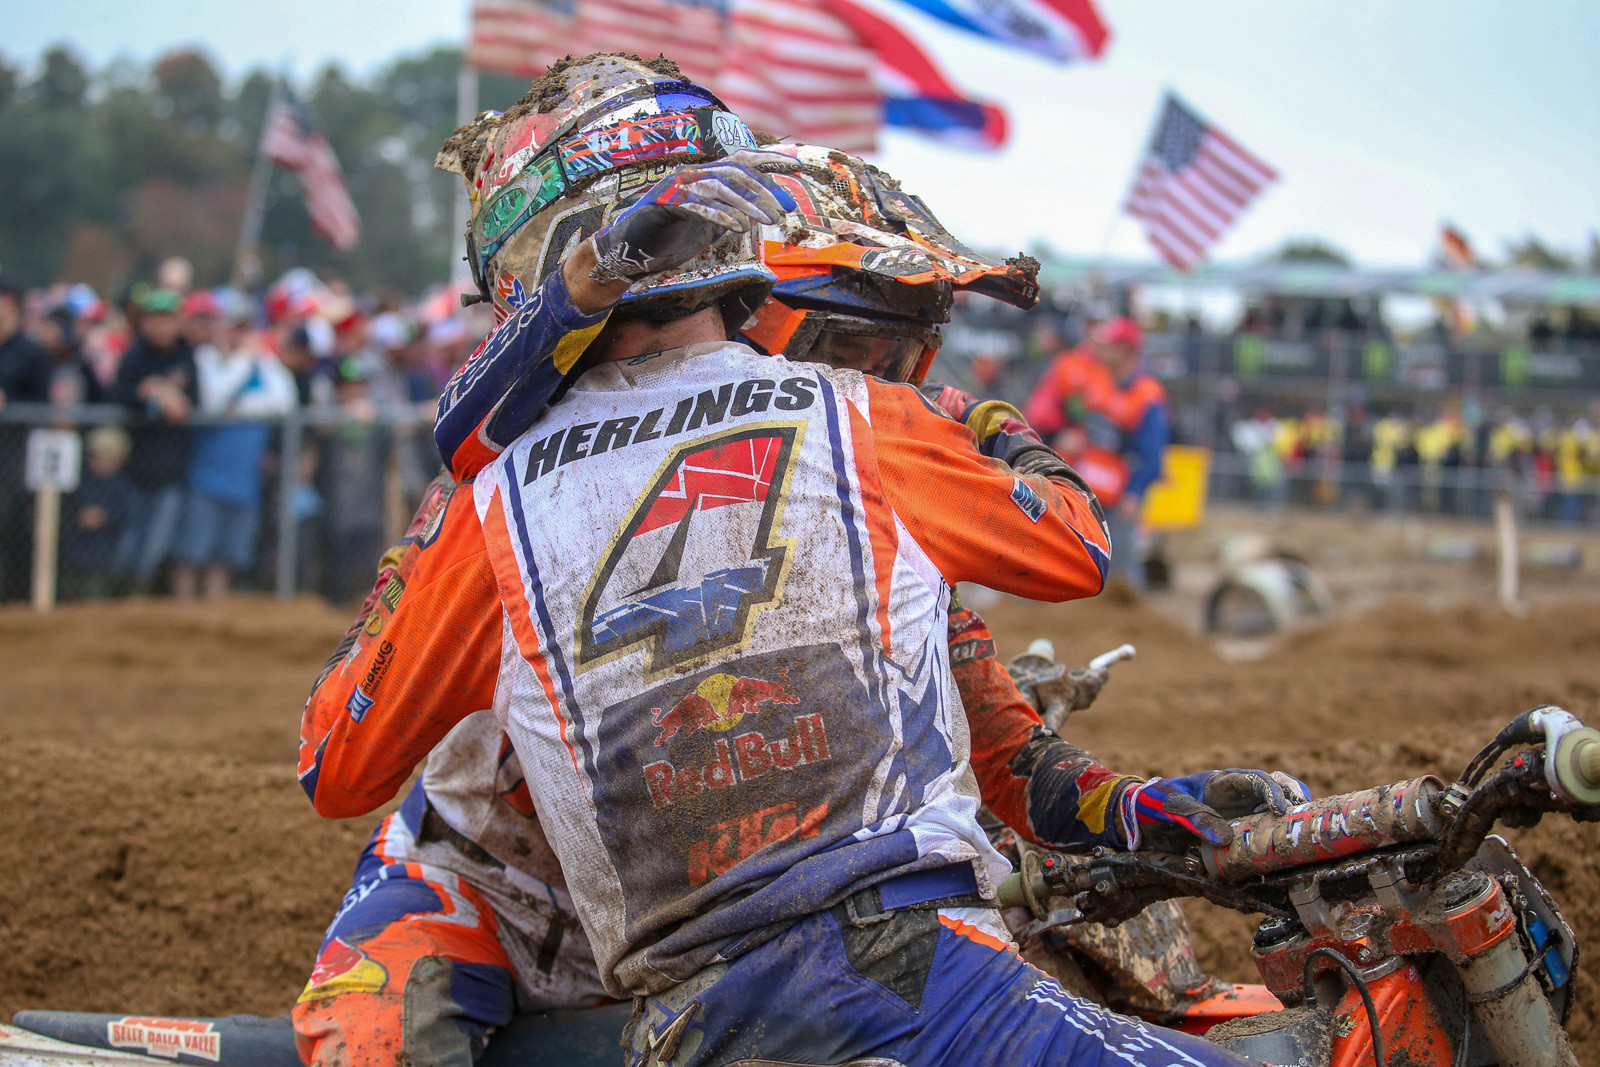 Glenn Coldenhoff and Jeffrey Herlings finished 1-2 in the final moto, with both of them taking the overall win in their classes. Minus the eye injury to Calvin Vlanderen, they might have been the champs this time around.